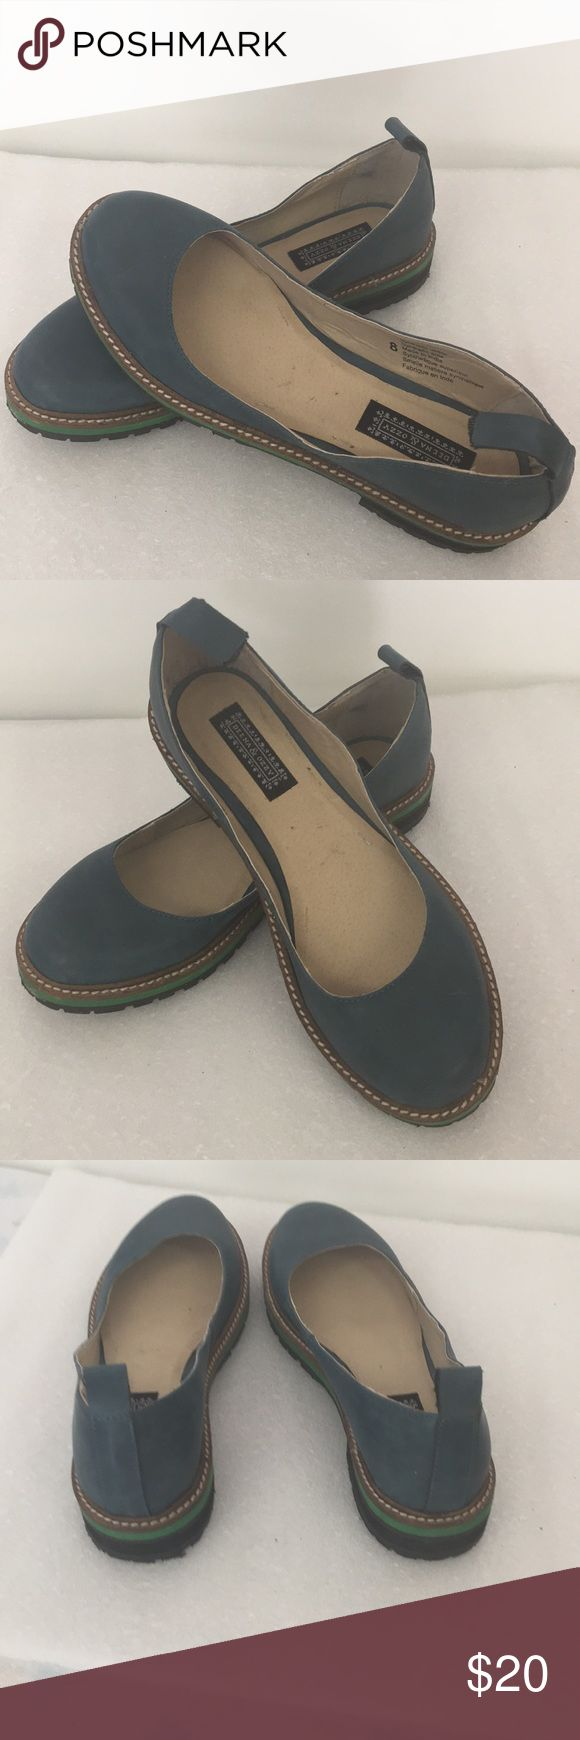 Durable Like New Faux Leather Deena & Ozzy Shoes